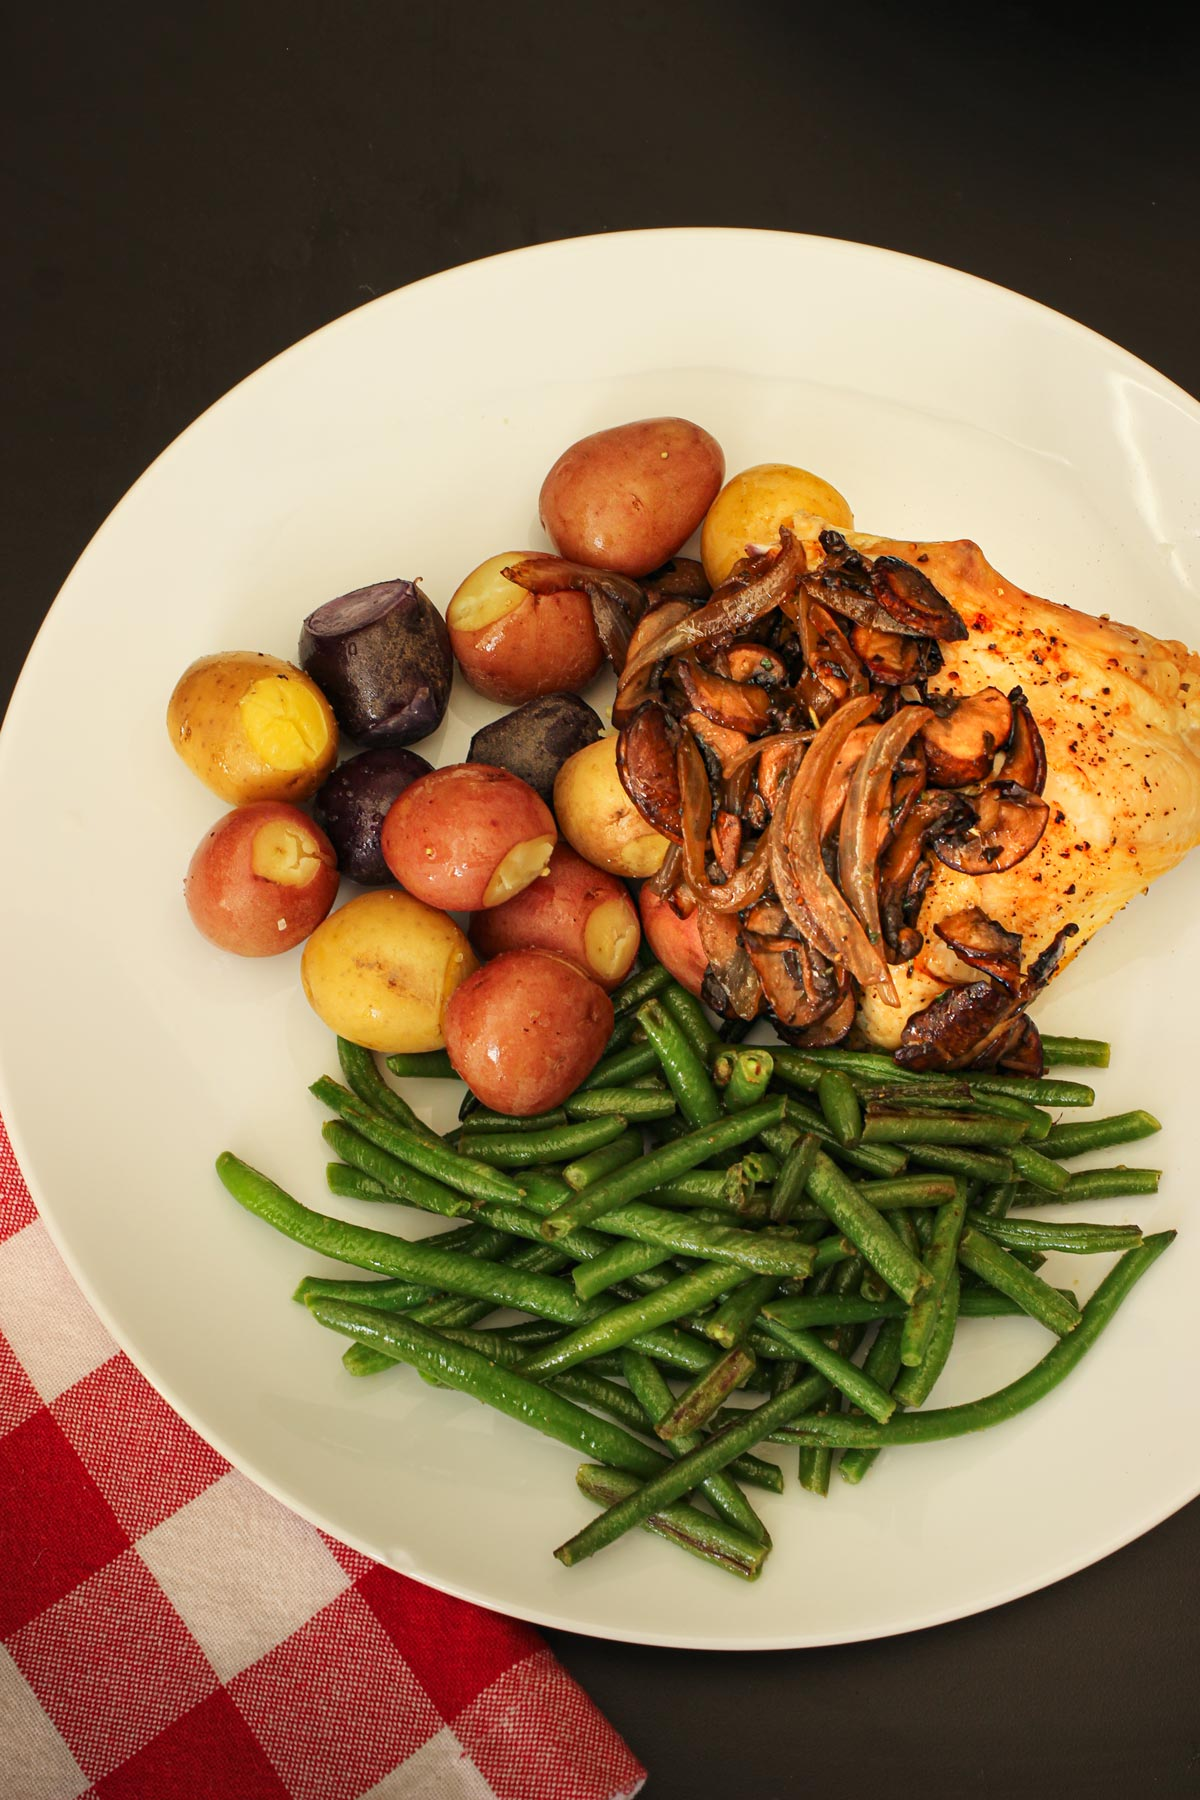 dinner plate with tri-color potatoes, chicken with sautéed mushrooms and onions, and green beans.